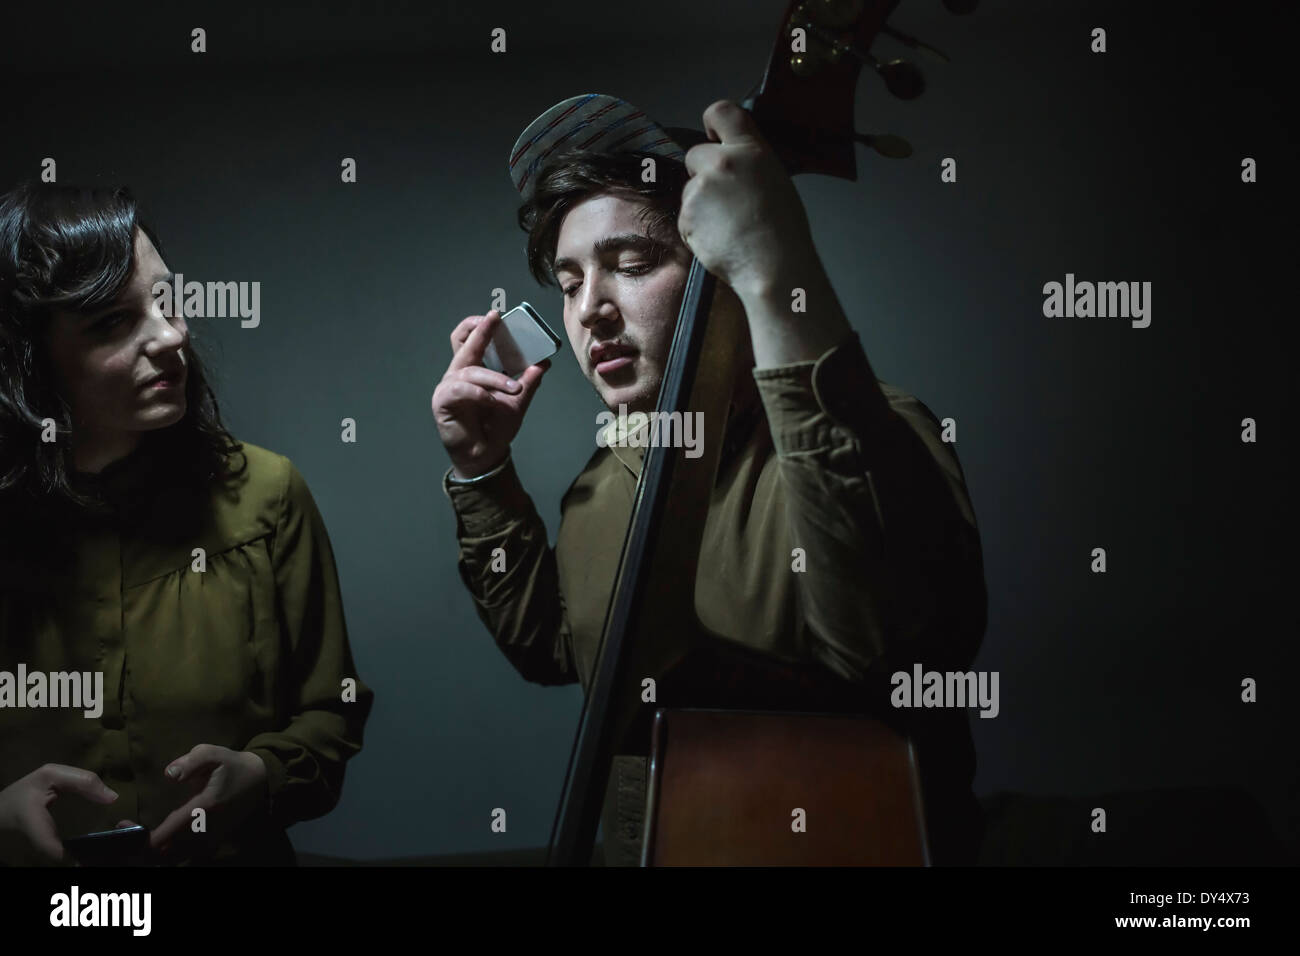 Musicians with double bass and smartphone - Stock Image